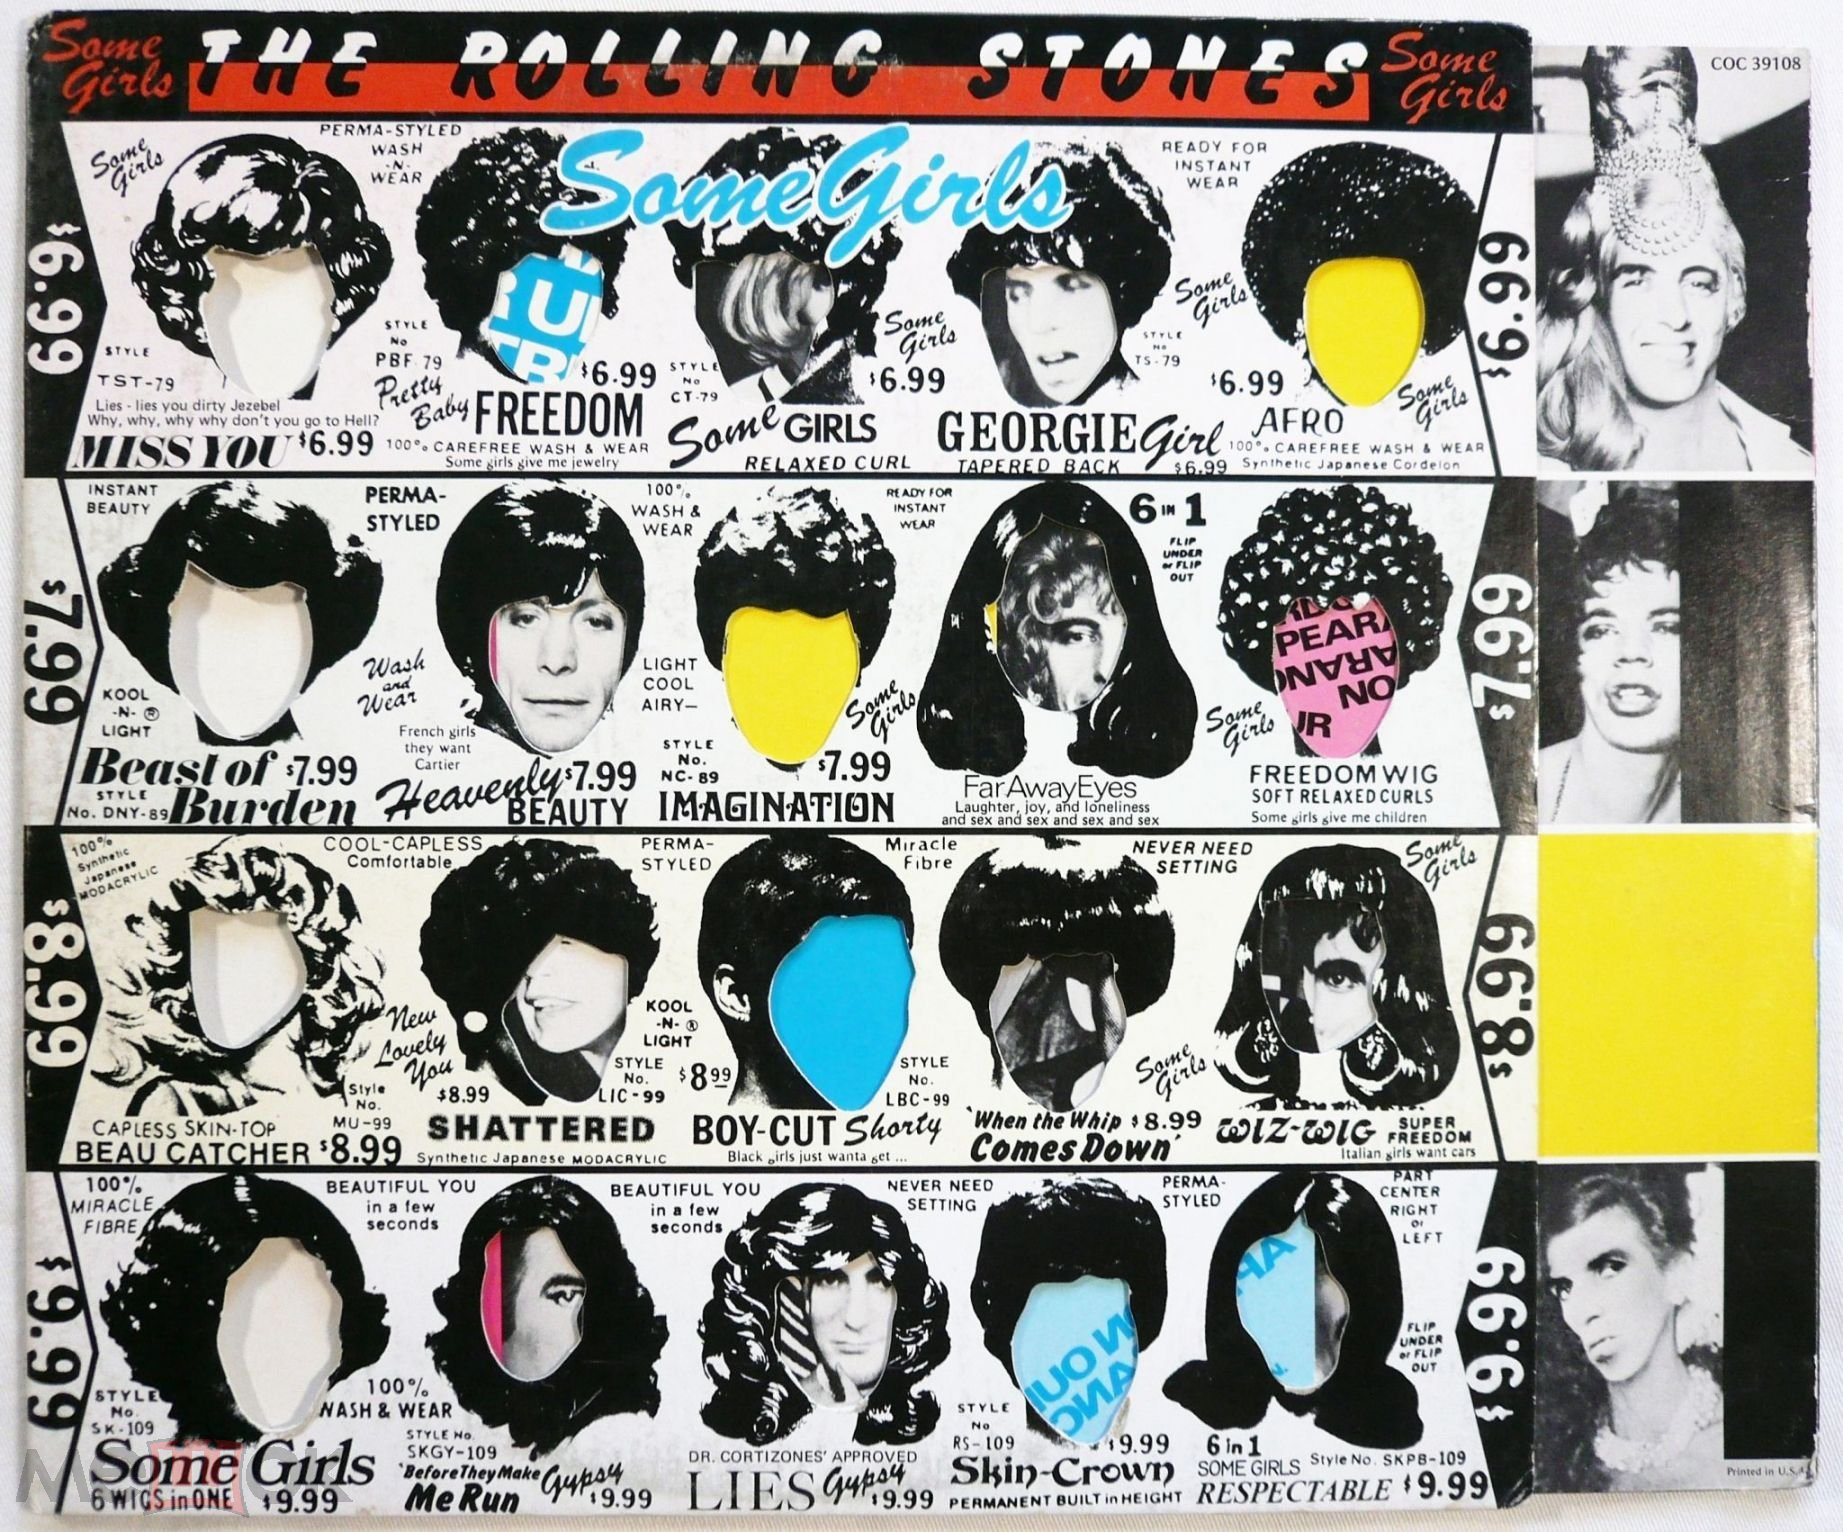 Rolling stones-some girls photos 88